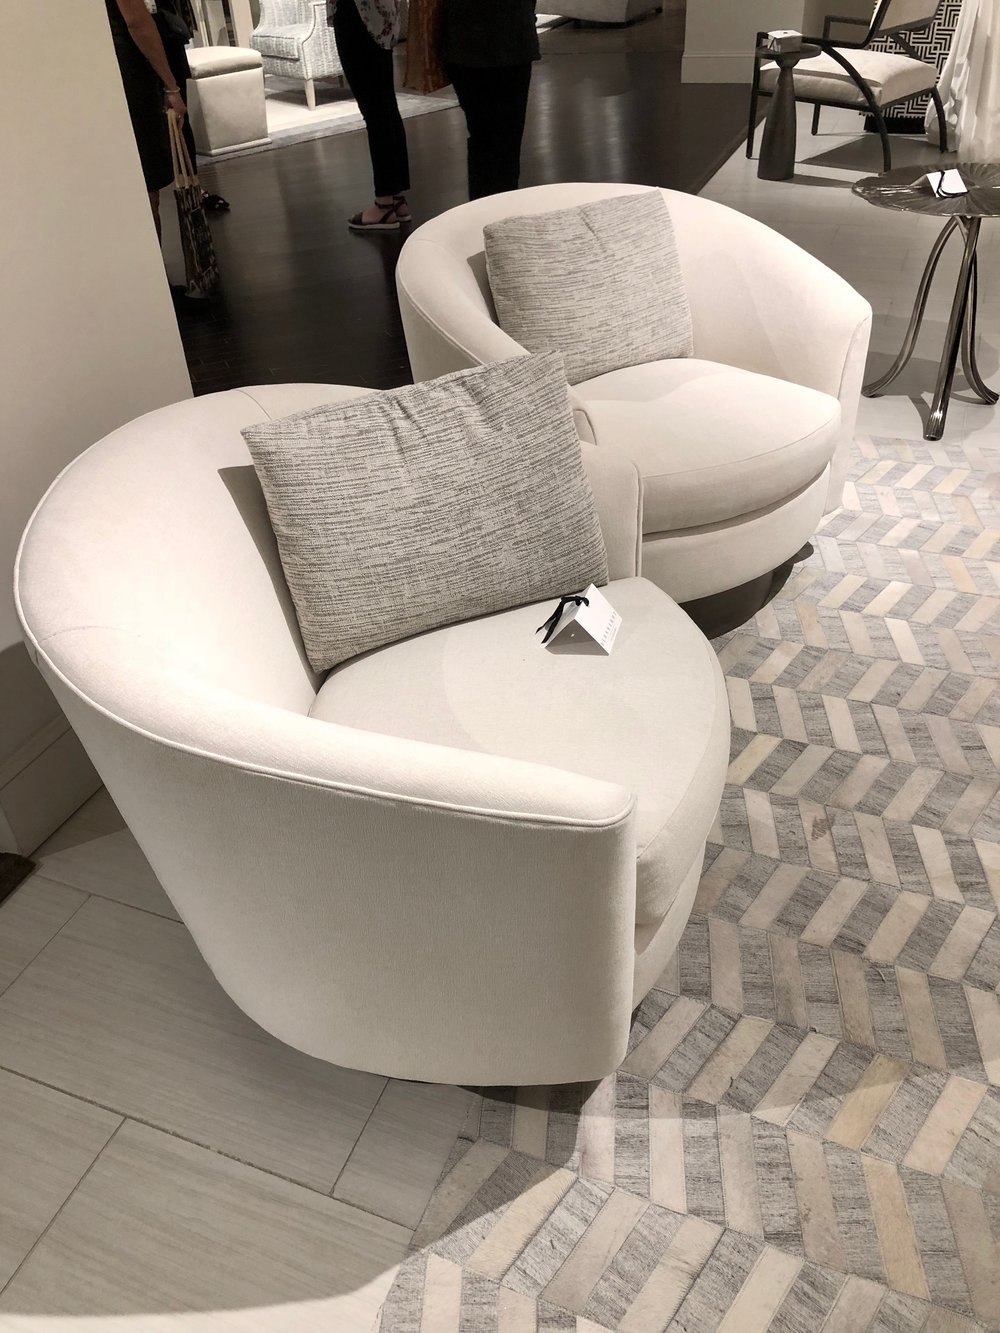 Swivel tub chairs from Bernhardt